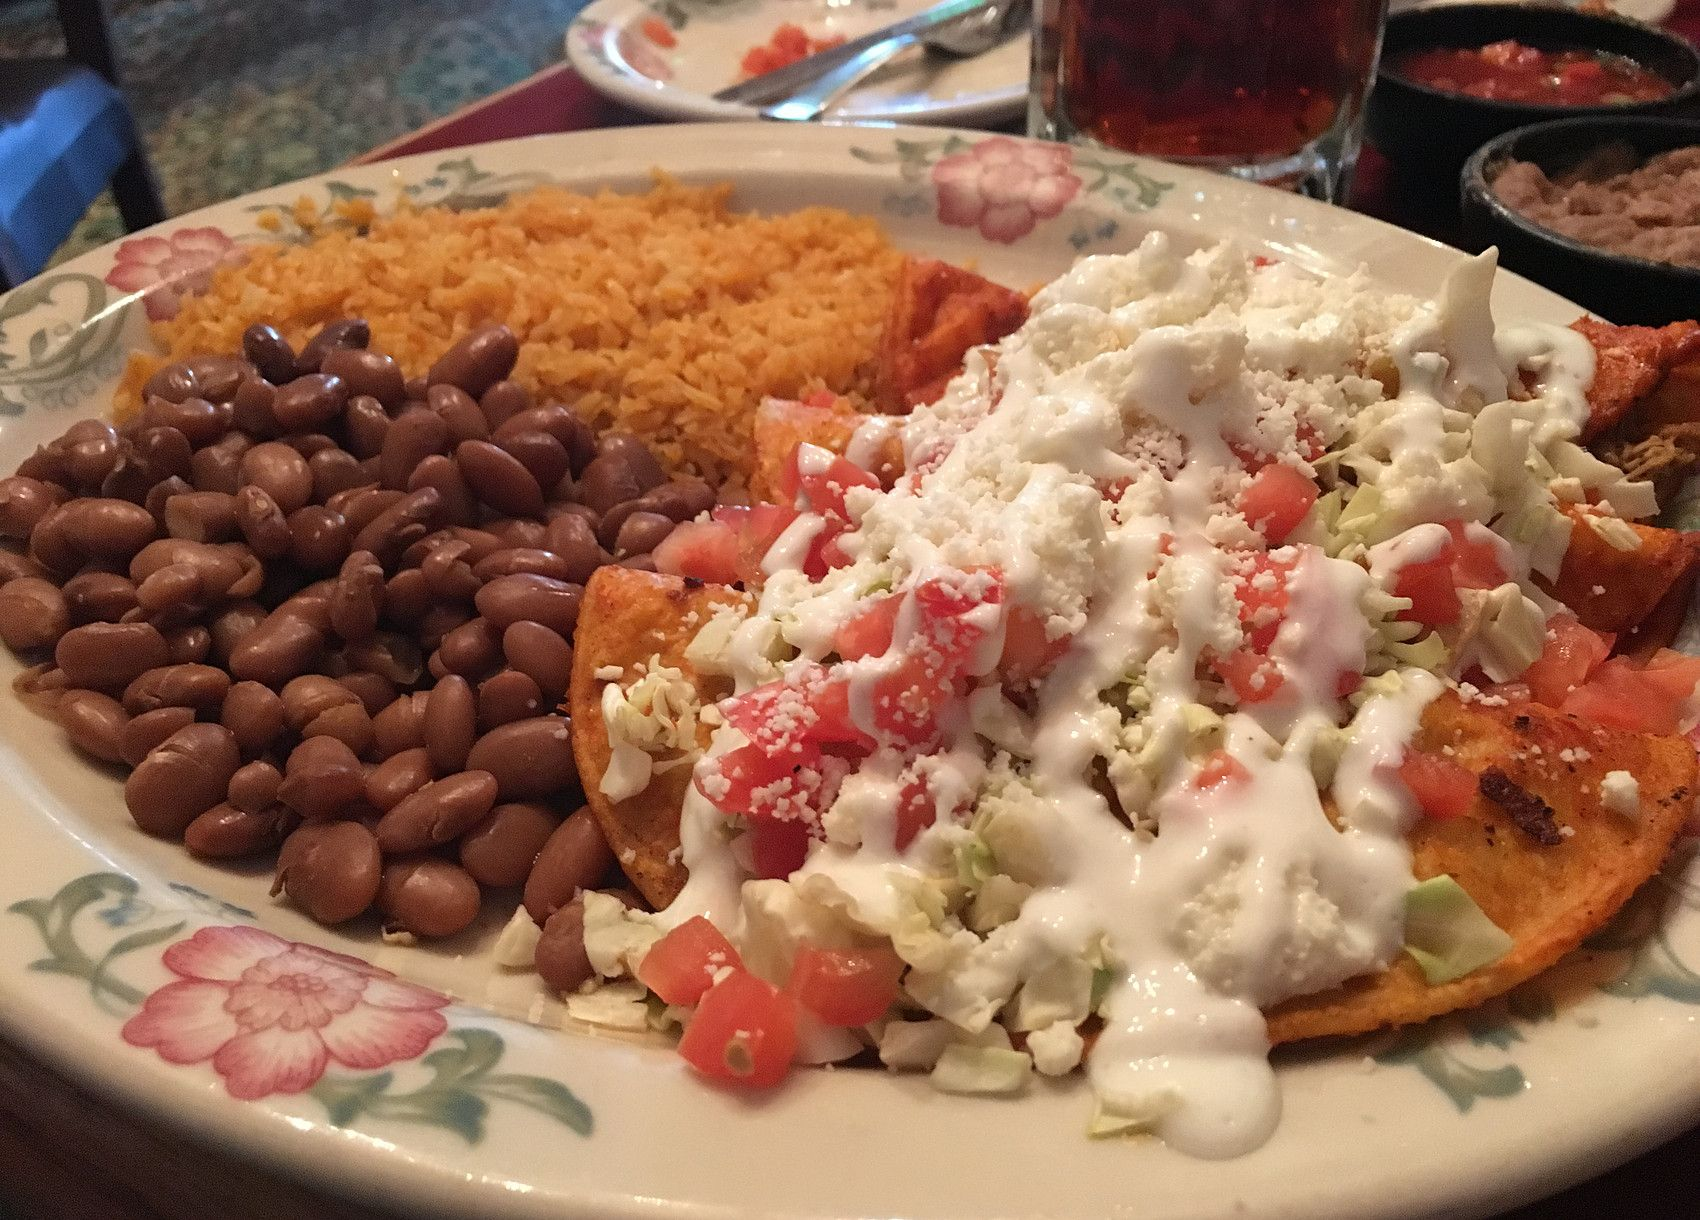 Jaliscos restaurant idaho falls id offers some of the